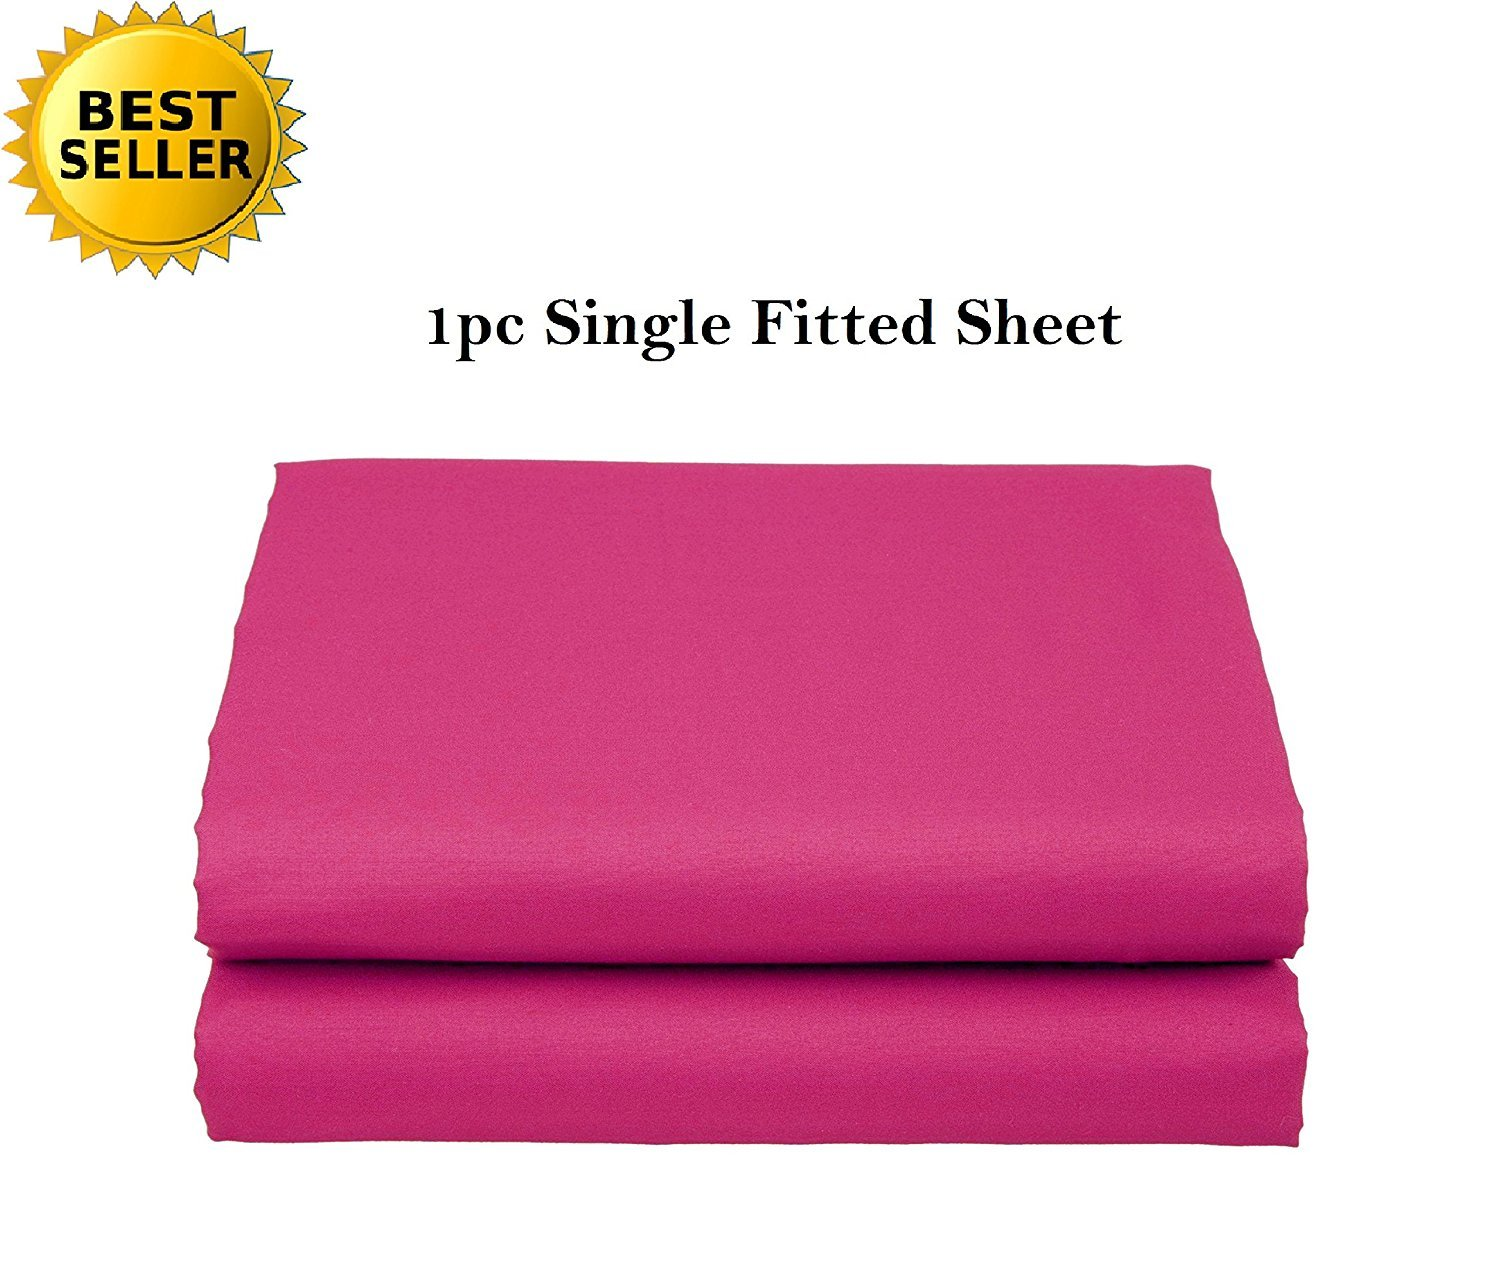 Elegant Comfort Luxury Ultra Soft Single Fitted Sheet Special Treatment Construction Deep Pocket up to 16'' - Twin, Pink